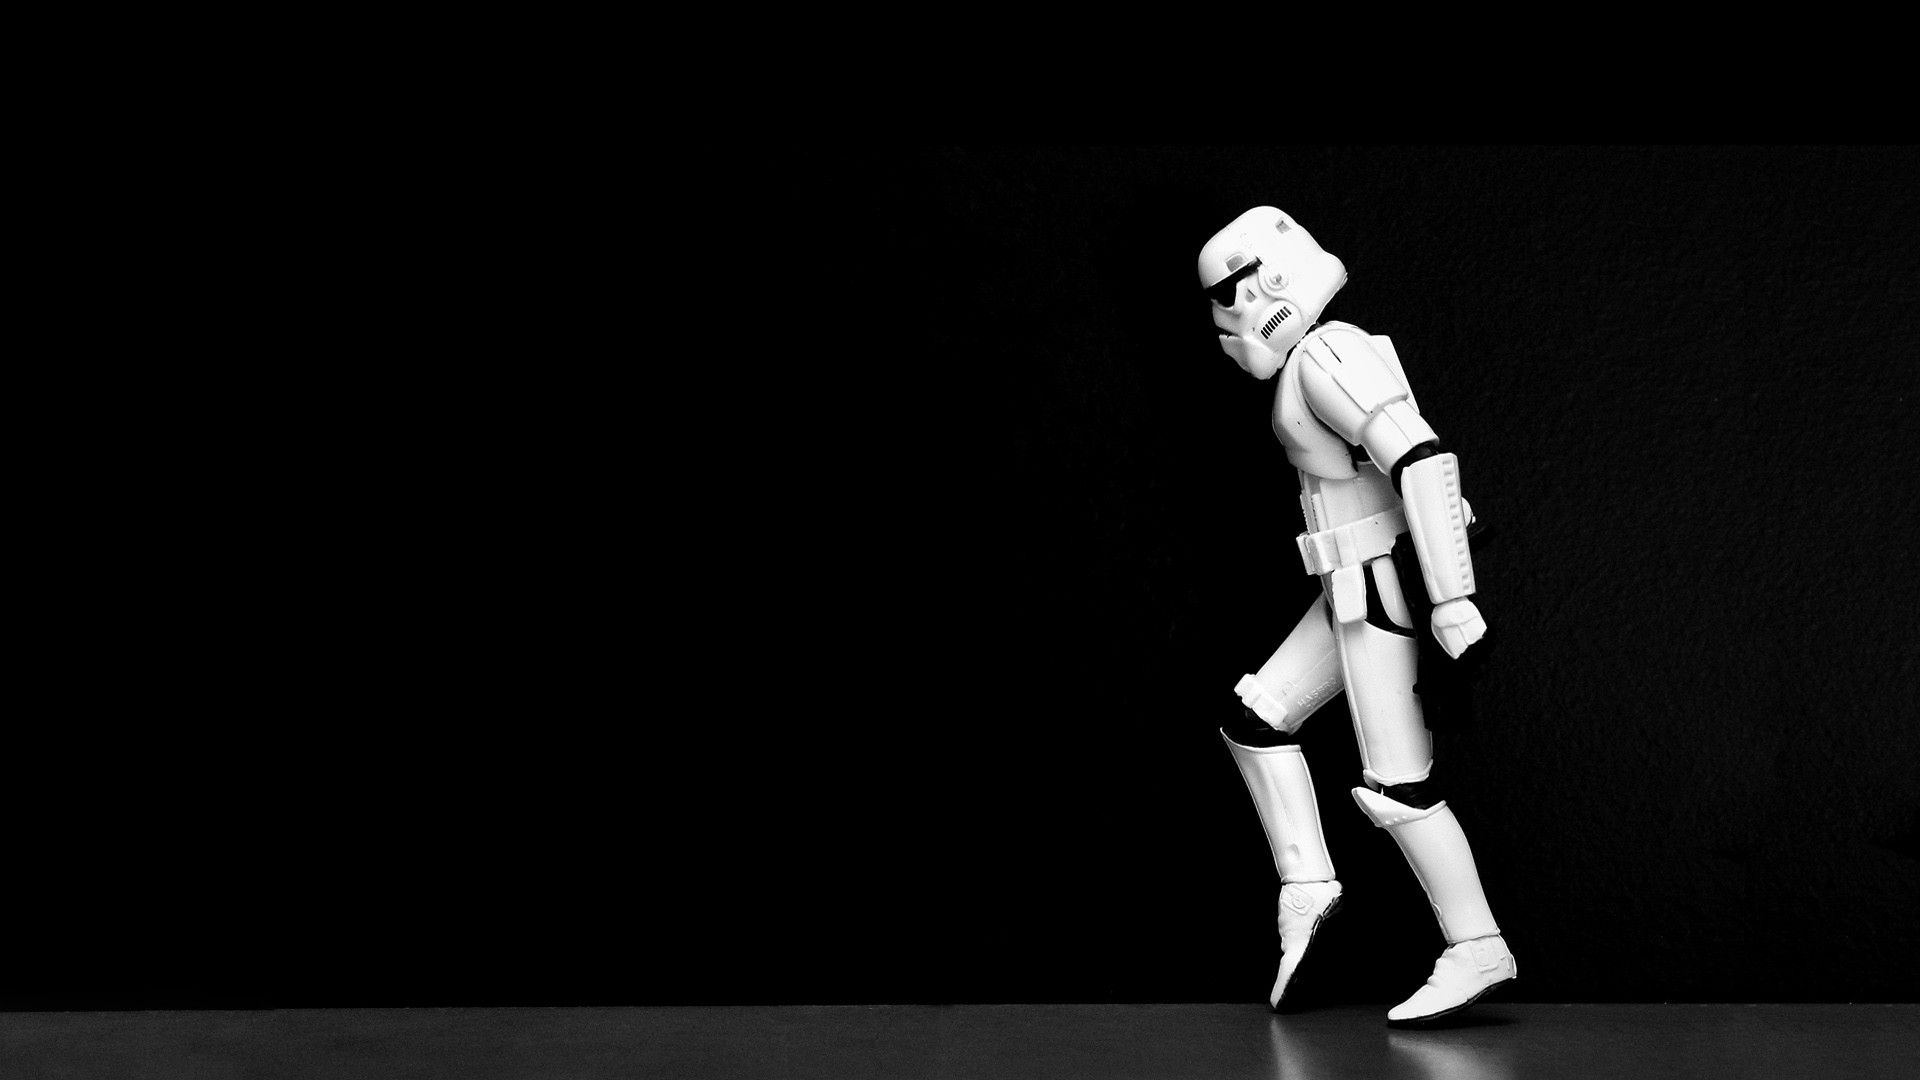 Funny Star Wars Black Hd Wallpaper Stormtrooper Moonwalker